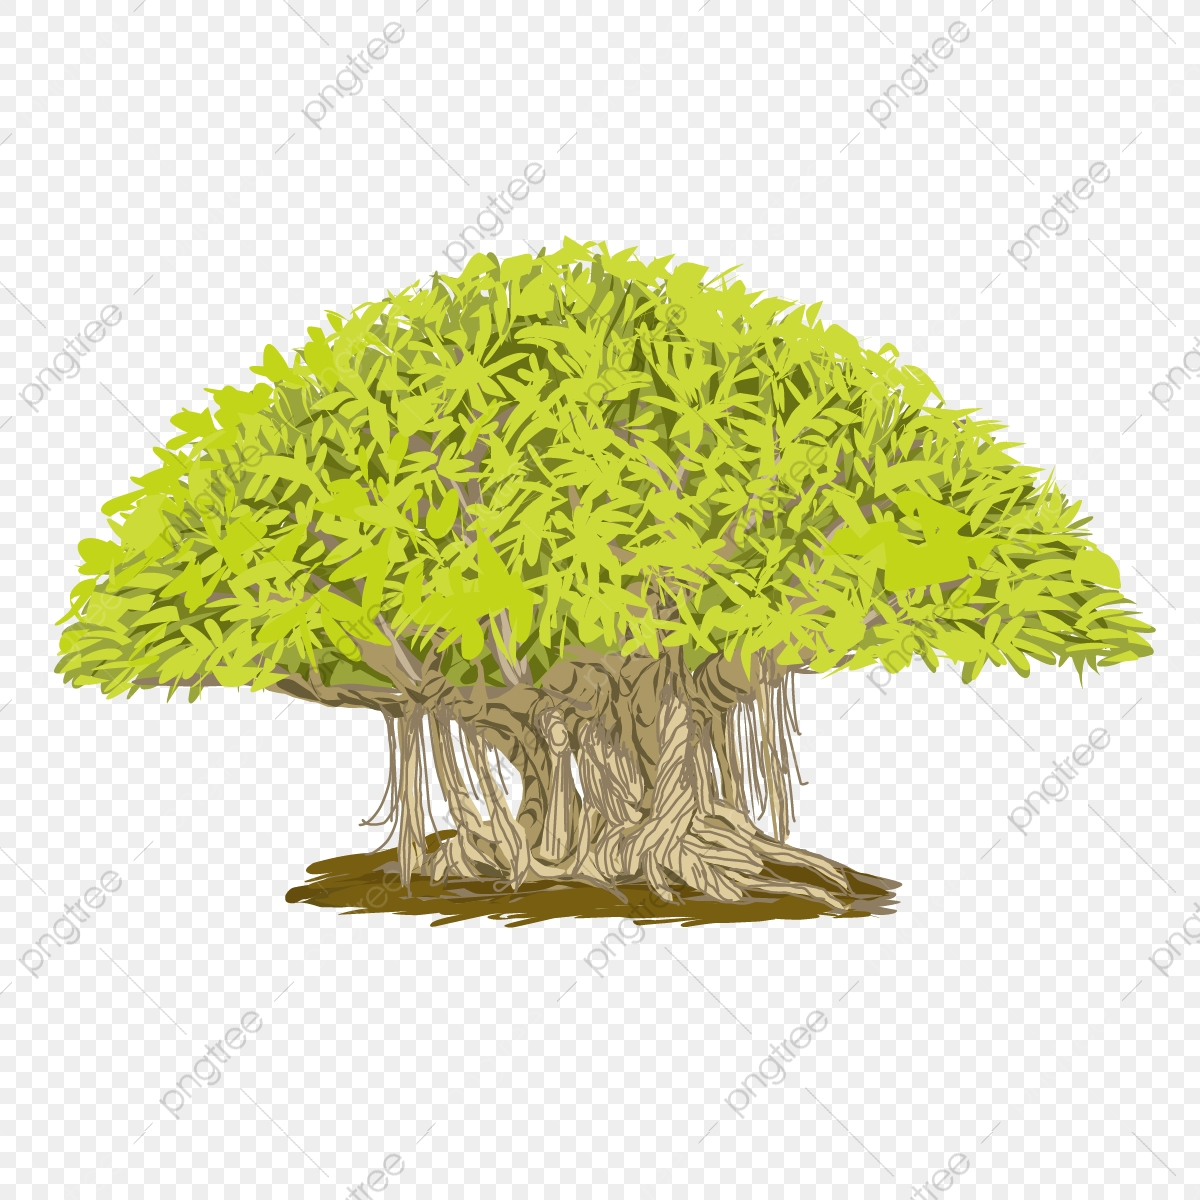 Illustration Art Of A Banyan Tree Logo With Isolated Background Tree Clipart Png Banyan Tree Banyan Tree Vector Png And Vector With Transparent Background For Free Download